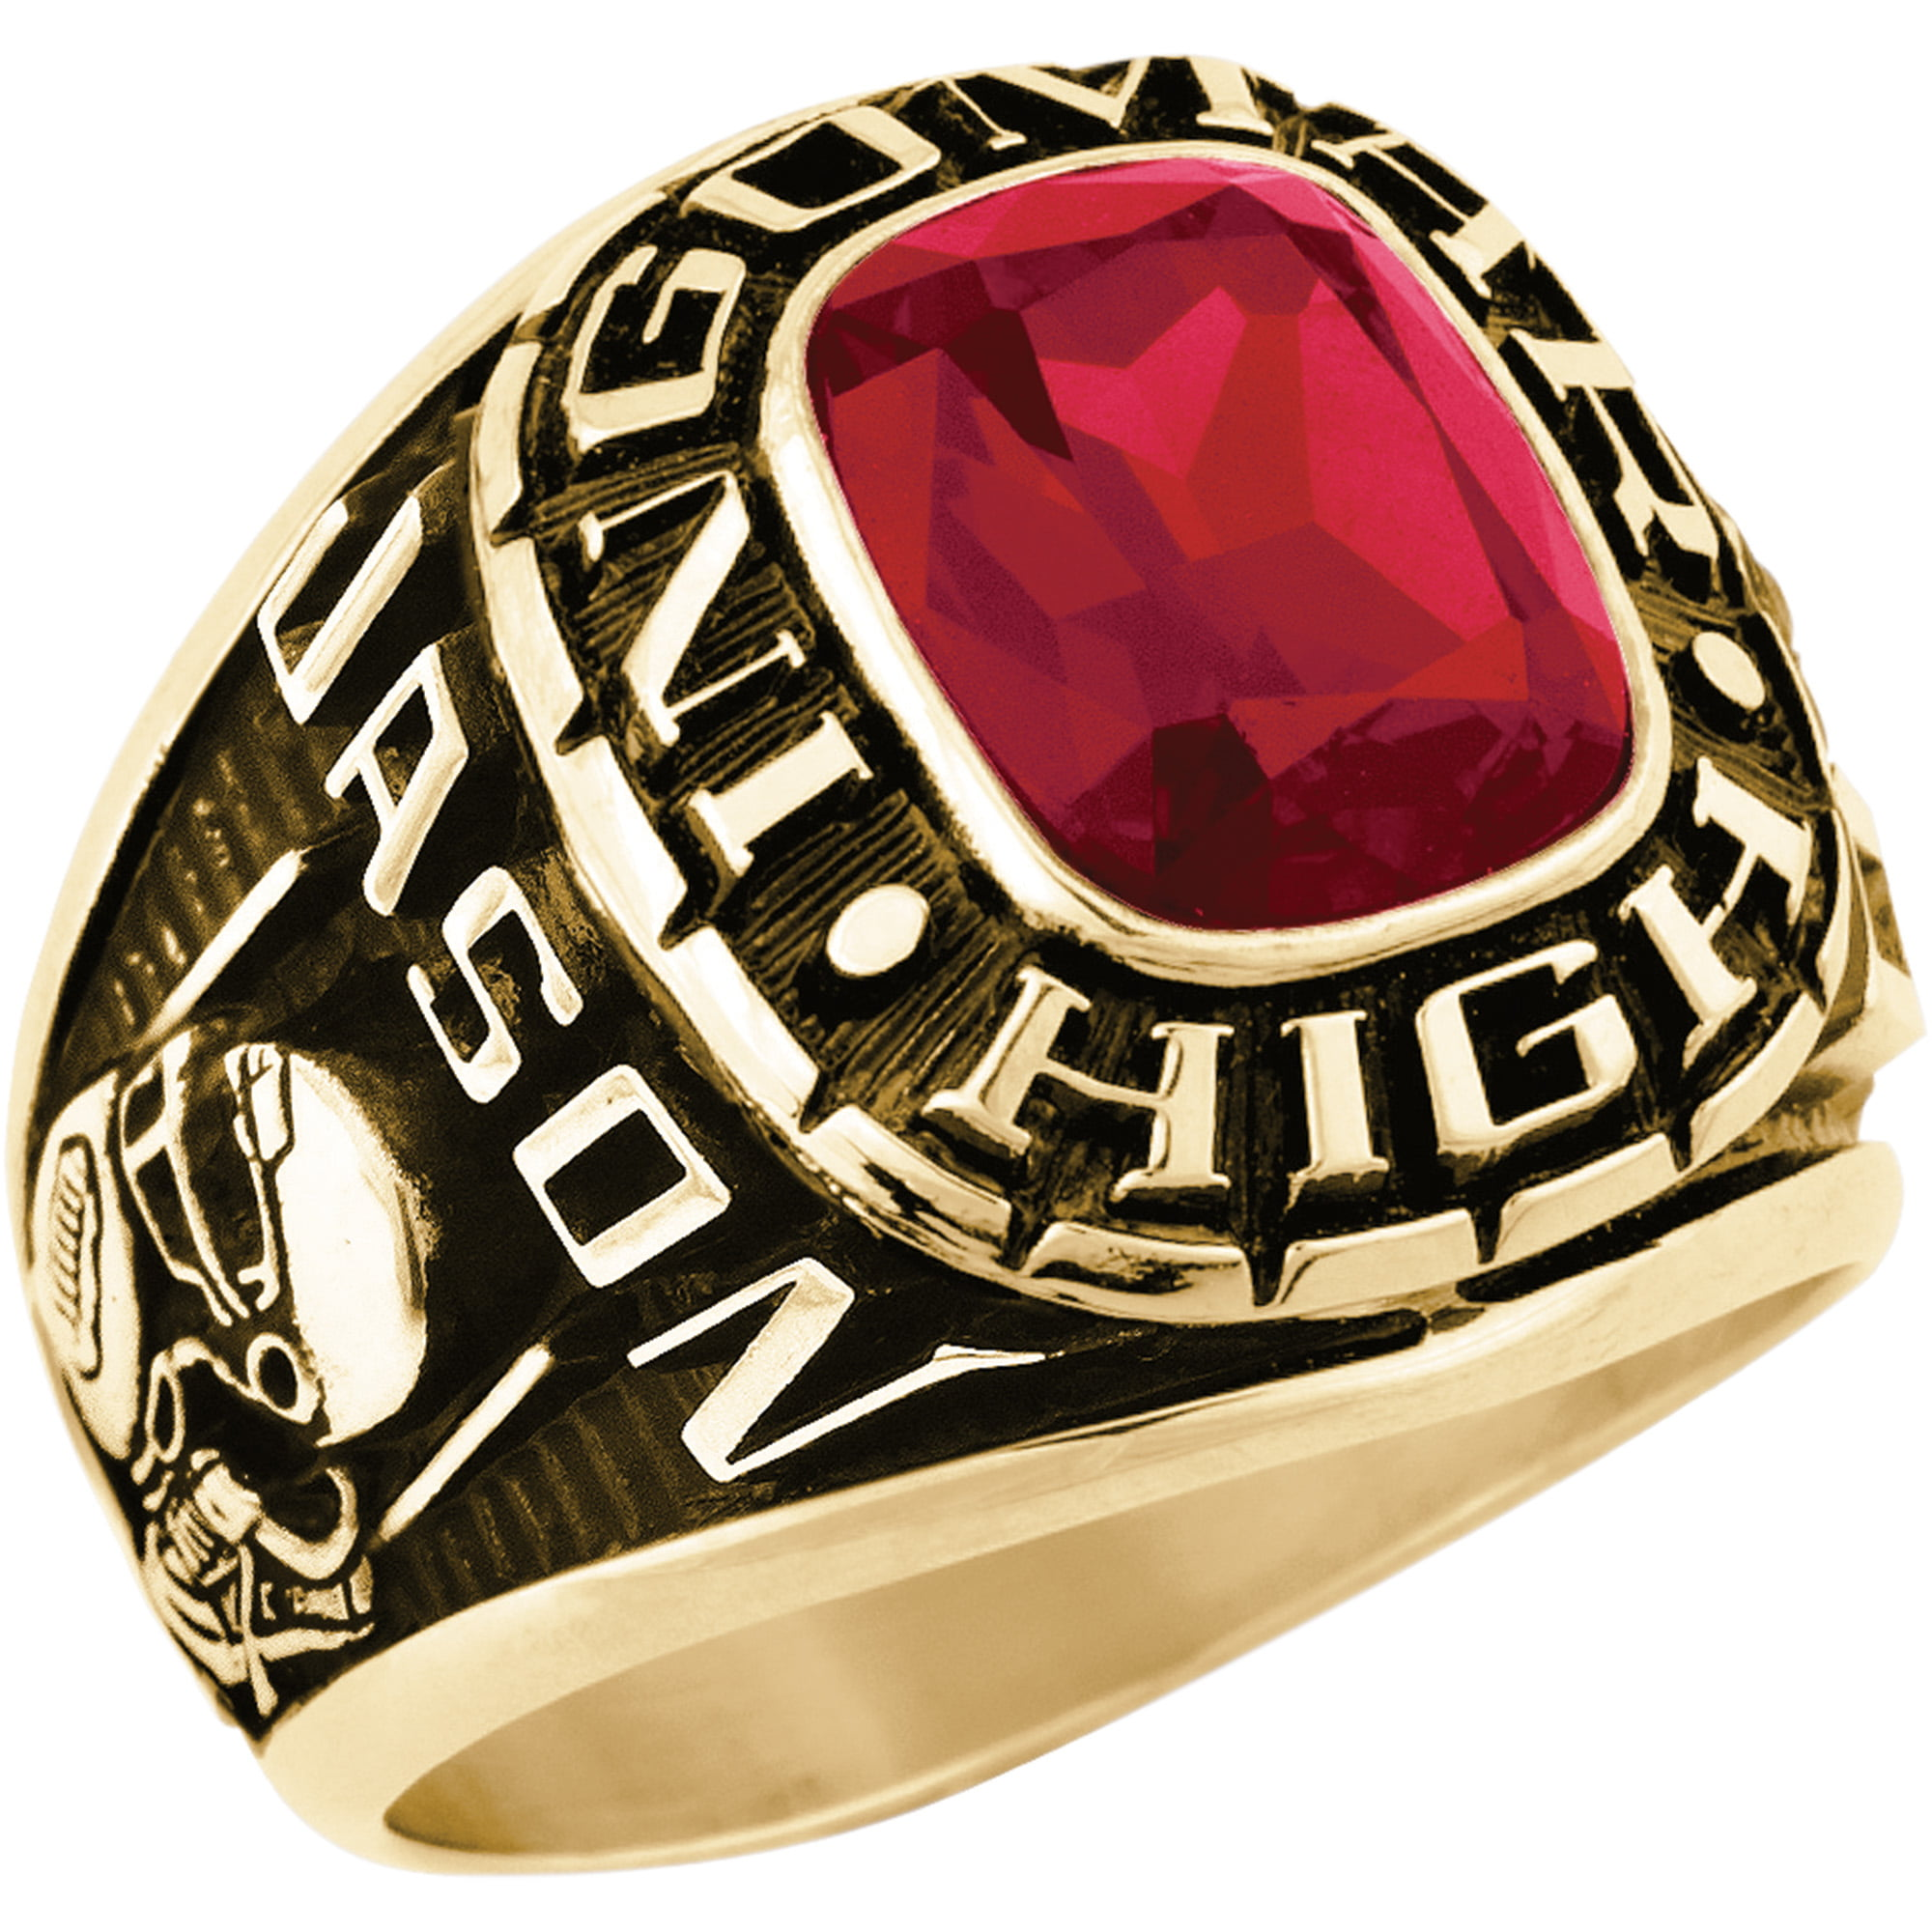 grammar high for college professional order softball print school large download rings championship easysitepicture